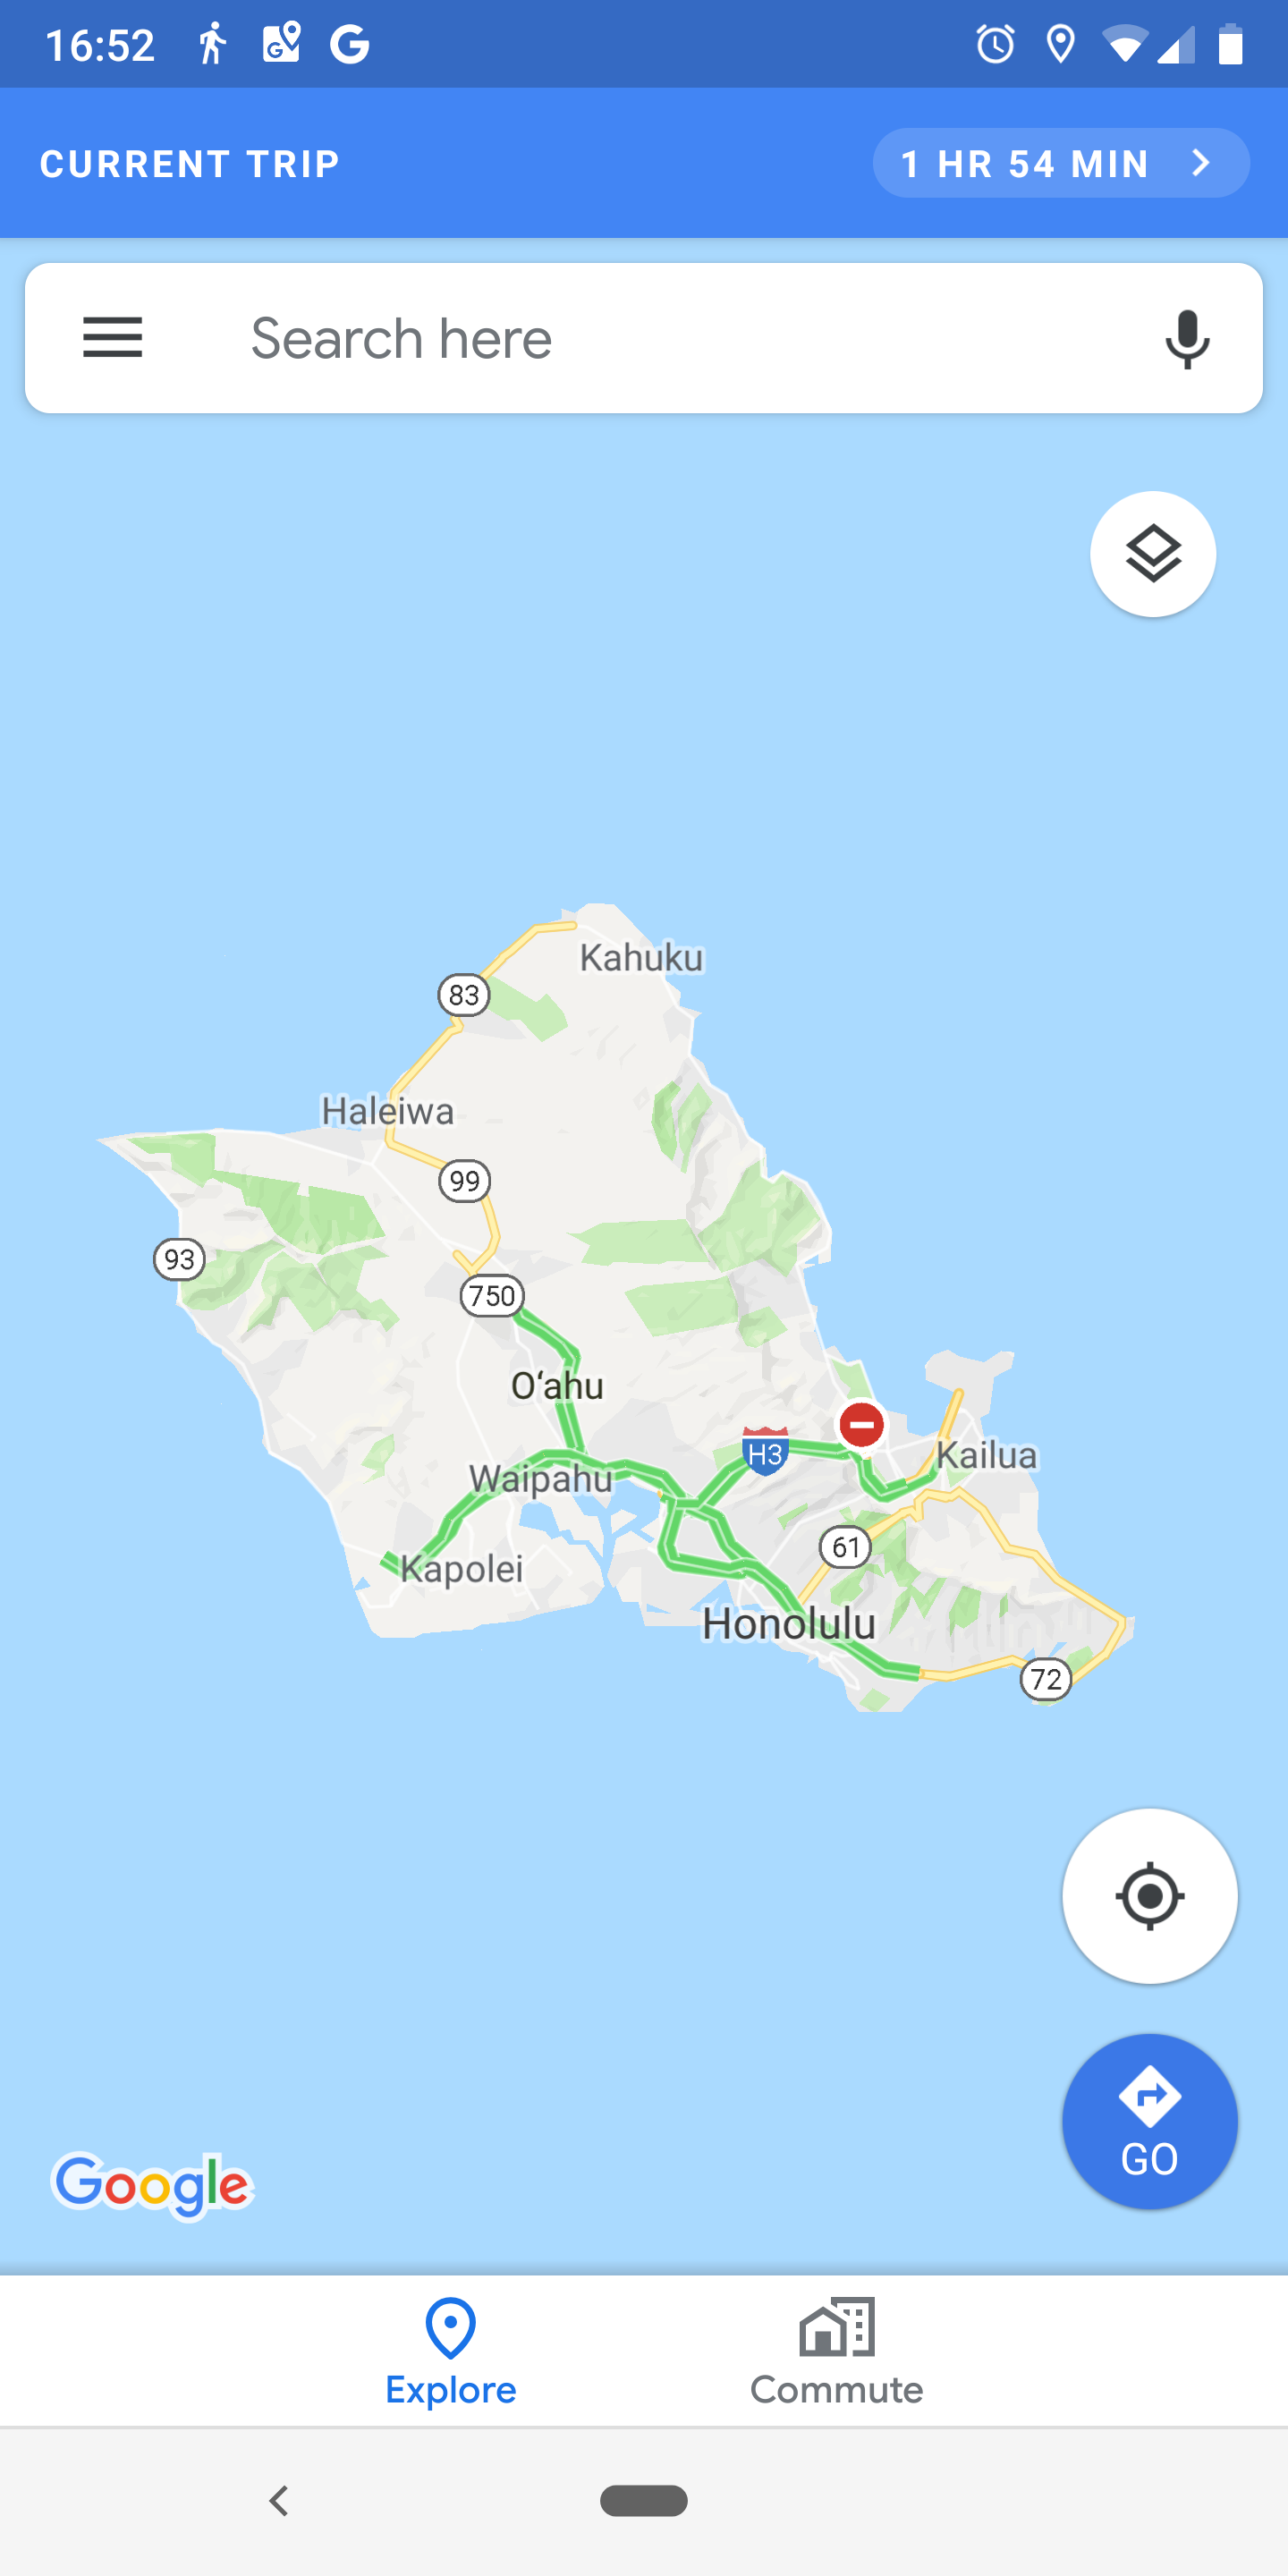 Resume Navigation Stunning Google Maps Tests An Option To Back Out Of Navigation Without